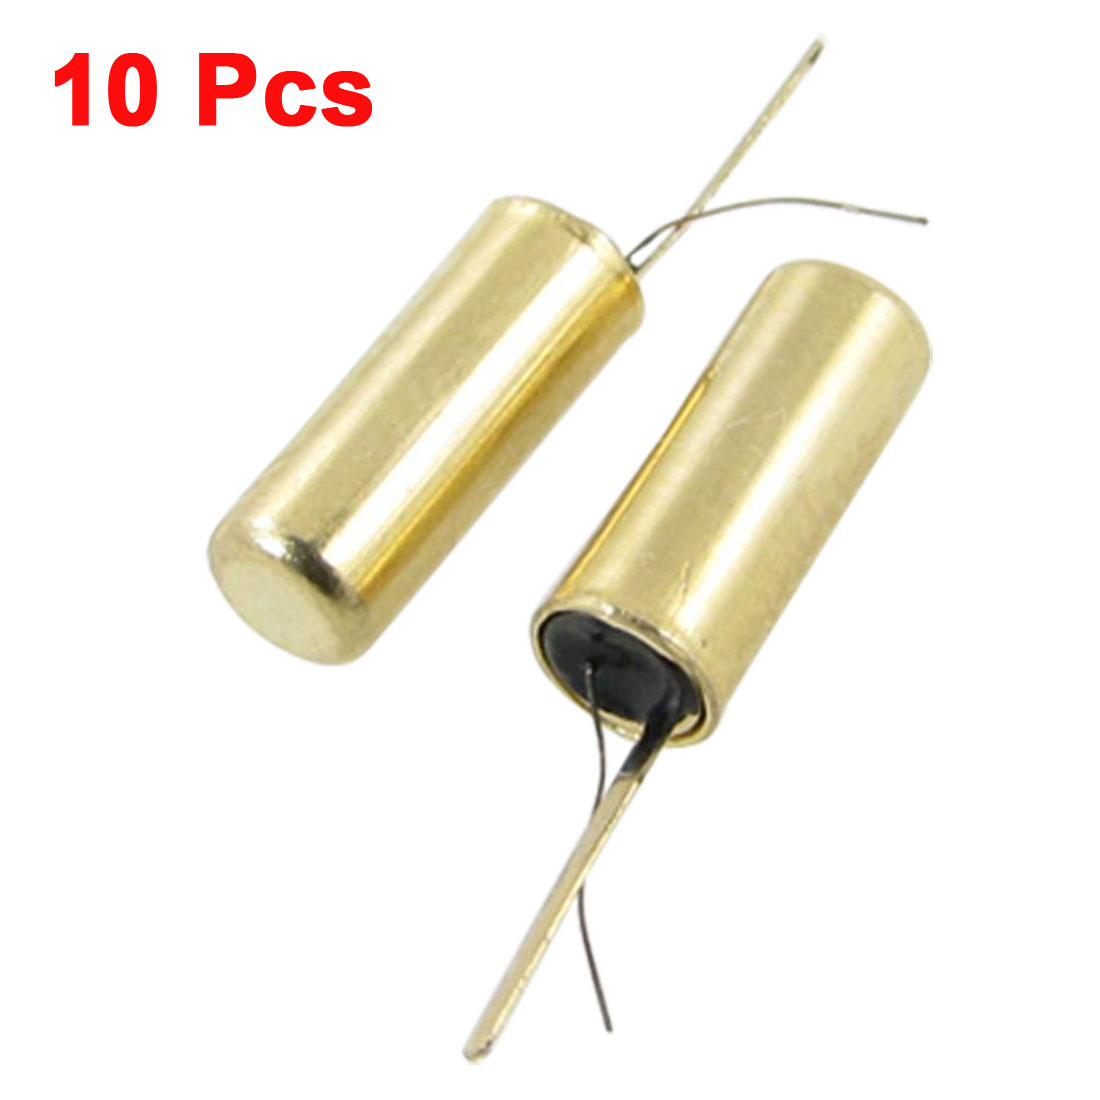 10 Pcs 12V 10M Ohm Mini Vibration Switch Sensor Gold Tone SW-58020